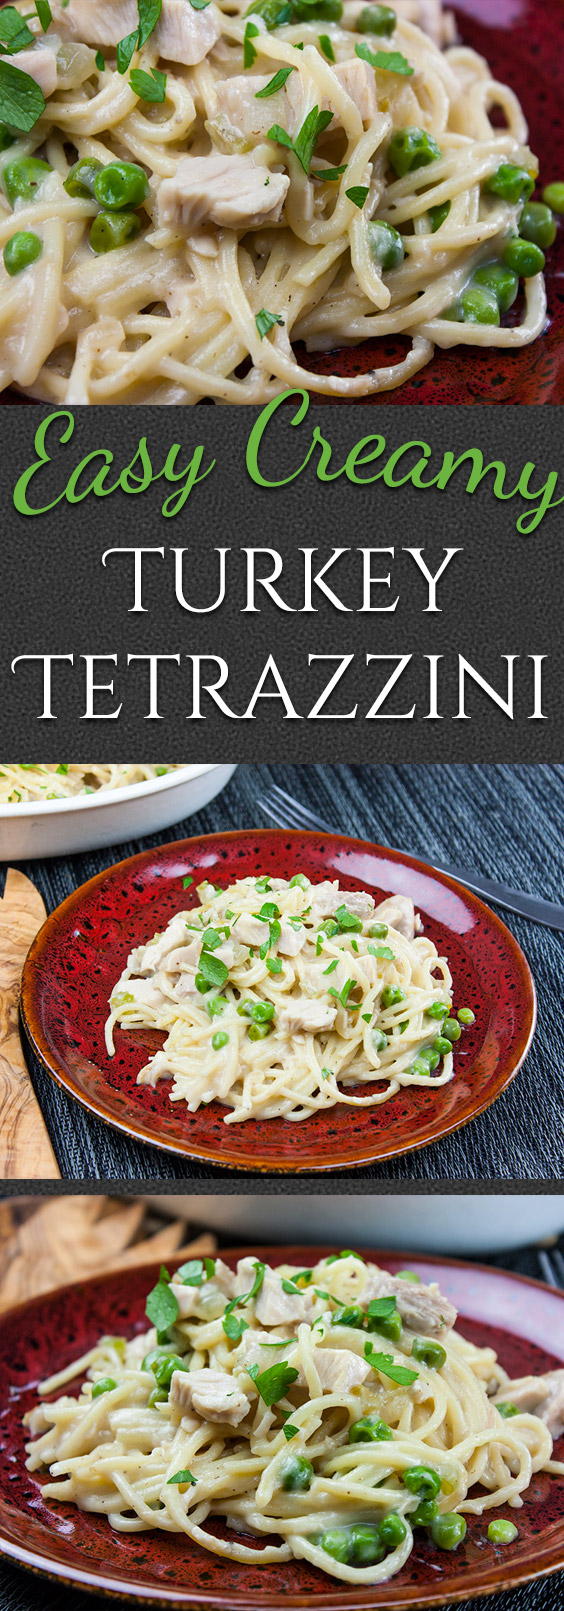 Easy Creamy Turkey Tetrazzini - From scratch, no canned soup! Use those turkey leftovers from Thanksgiving and Christmas in this easy, delicious, creamy noodle dish.